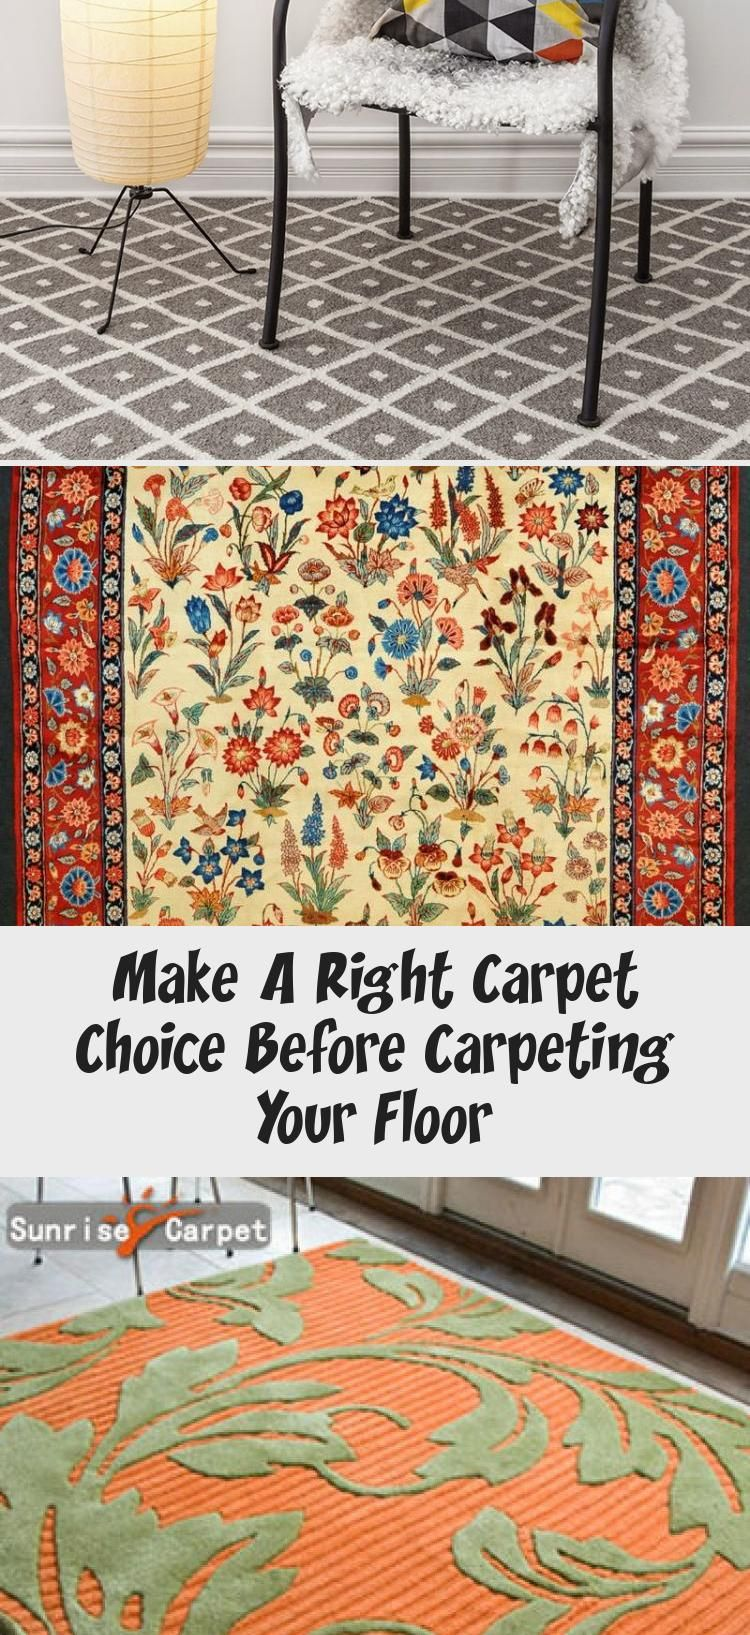 Make A Right Carpet Choice Before Carpeting Your Floor Best Carpet Designs Drawing Pattern After A Carpet D Traditional Carpet Design Best Carpet Carpet Design